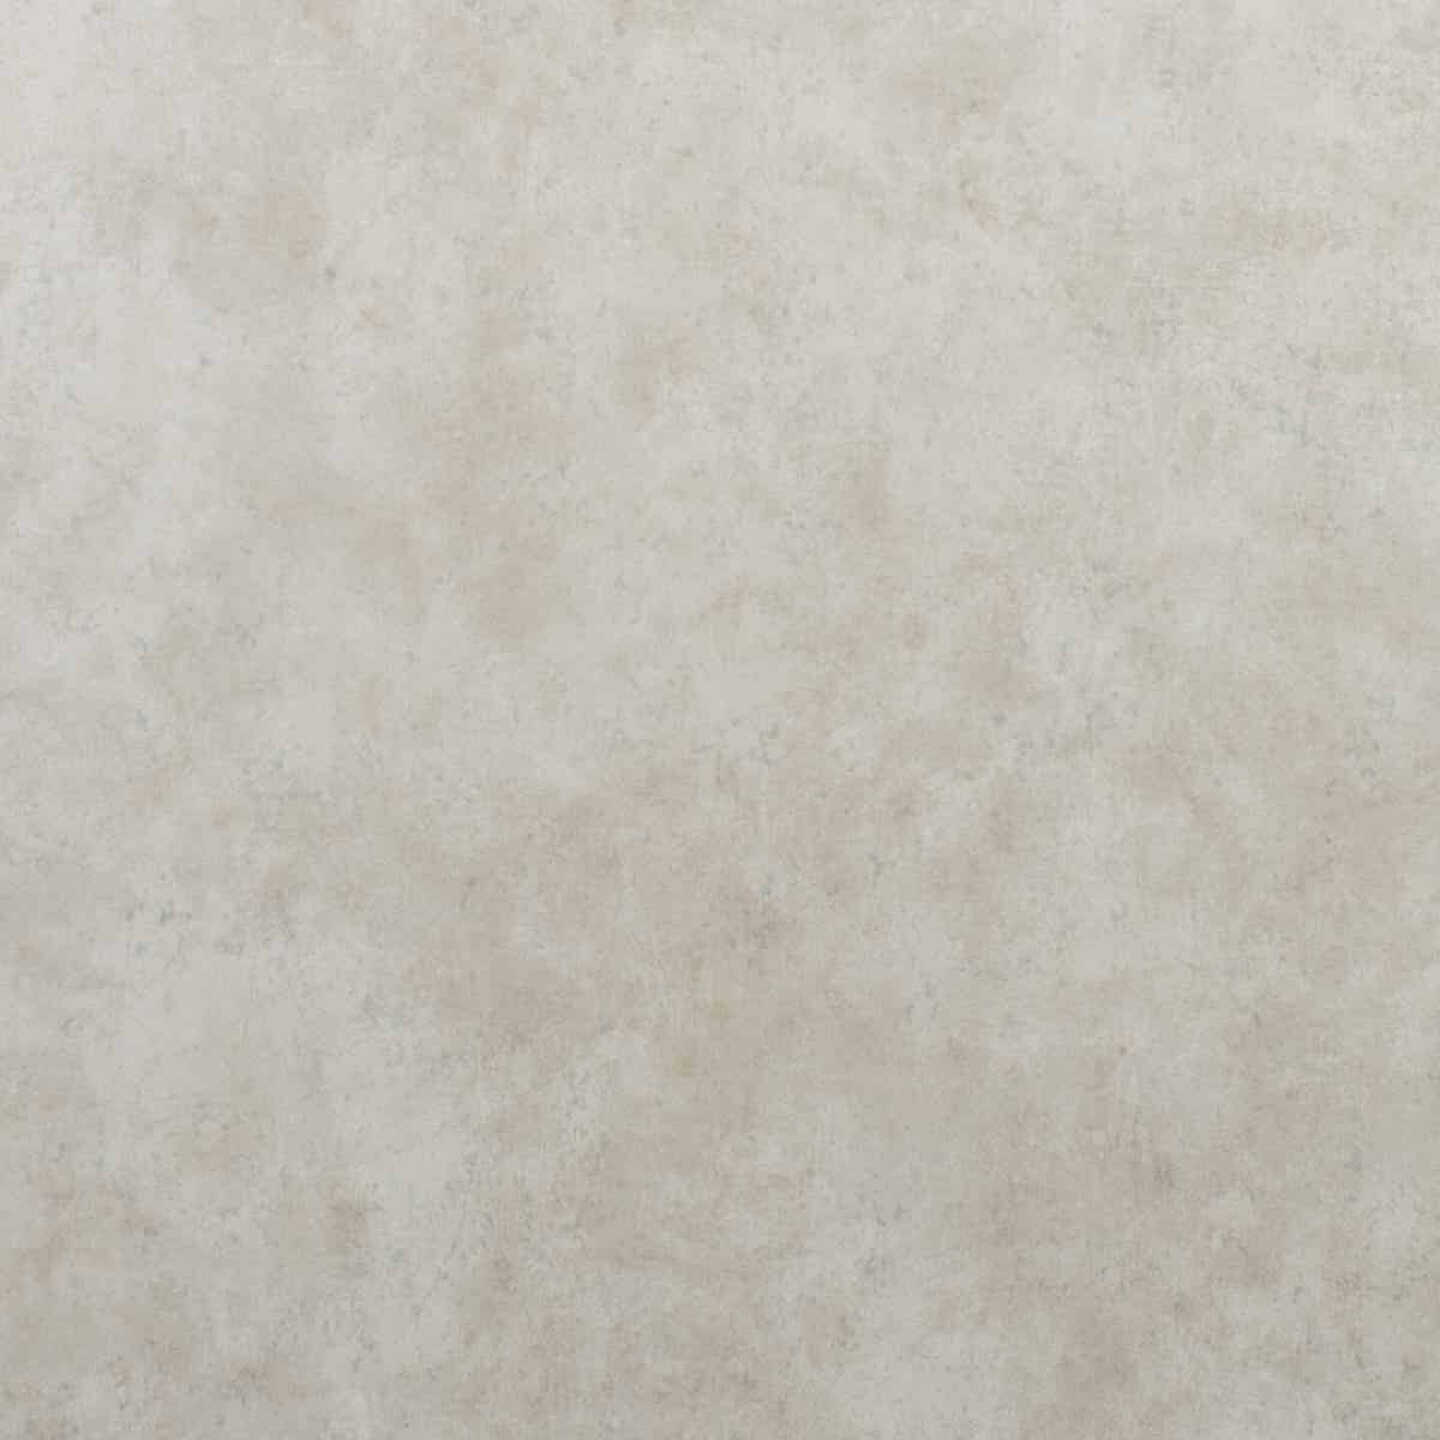 Global Product Sourcing Trend Textures 4 Ft. x 8 Ft. x 2.7 mm All Seasons Wall Paneling Image 1